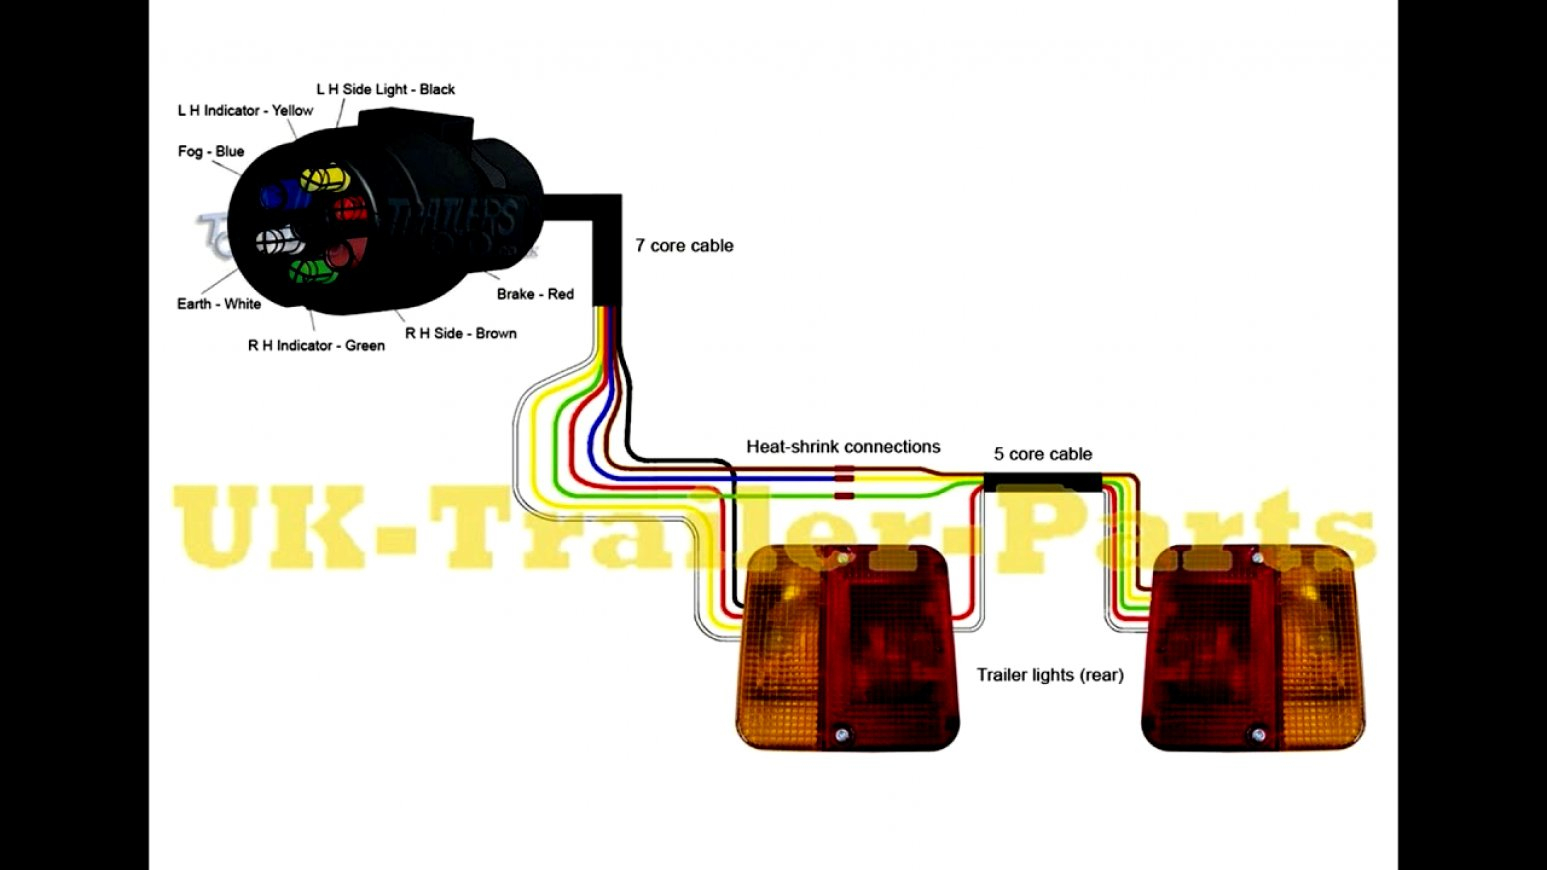 Gallery Of Trailer Light Wiring Diagram 7 Way Pin Plug Check This - Wiring Trailer Lights Diagram